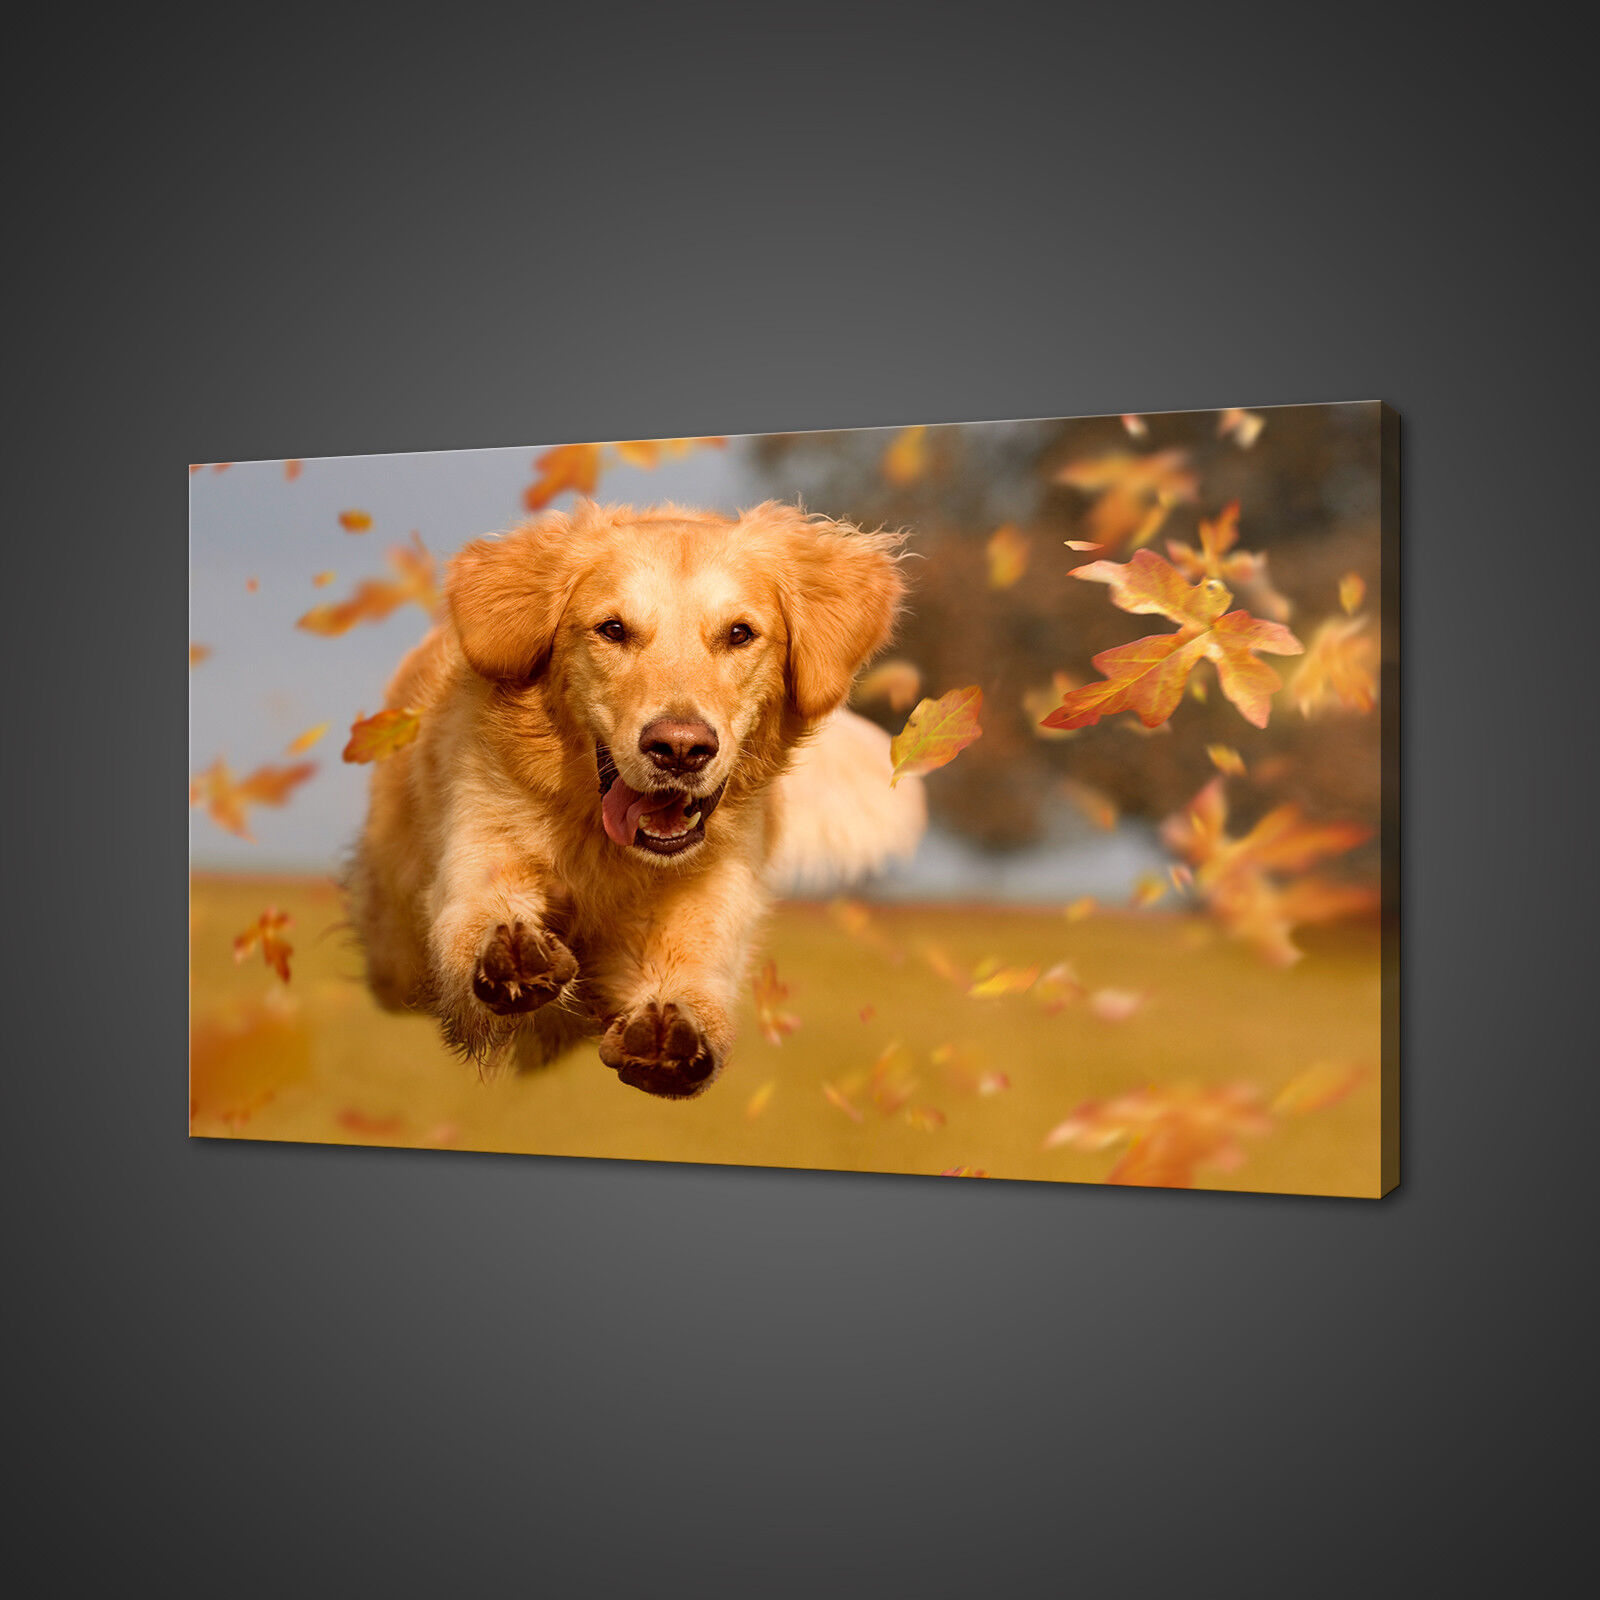 BEAUTIFUL GoldEN RETRIEVER DOG JUMPING CANVAS PRINT WALL ART PICTURE PHOTO